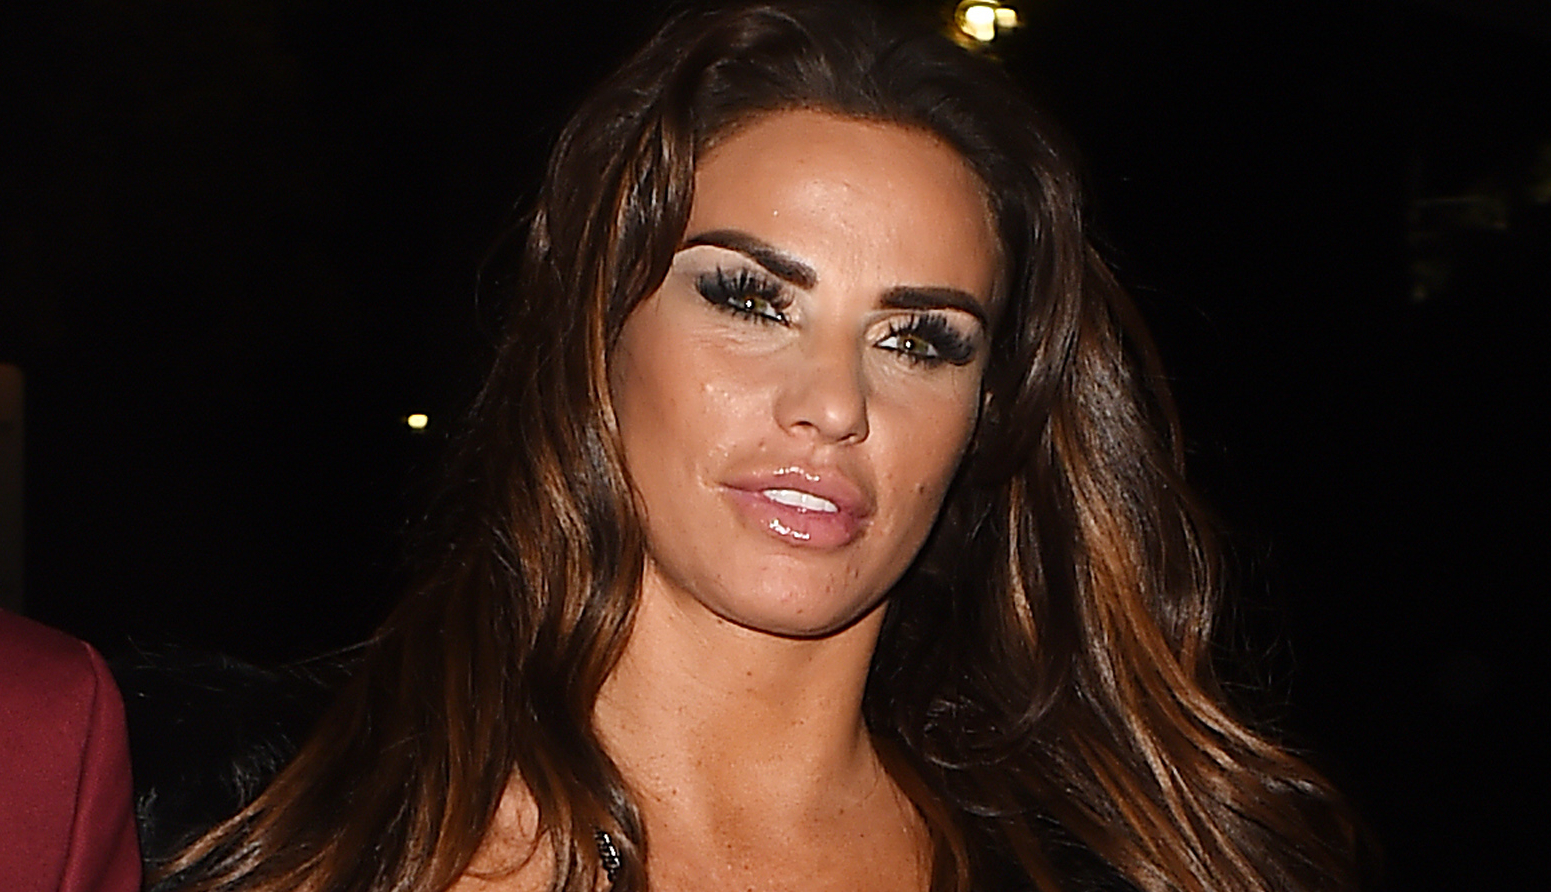 Katie Price is reportedly 'obsessed' about looking younger and wants a 'sugar daddy'